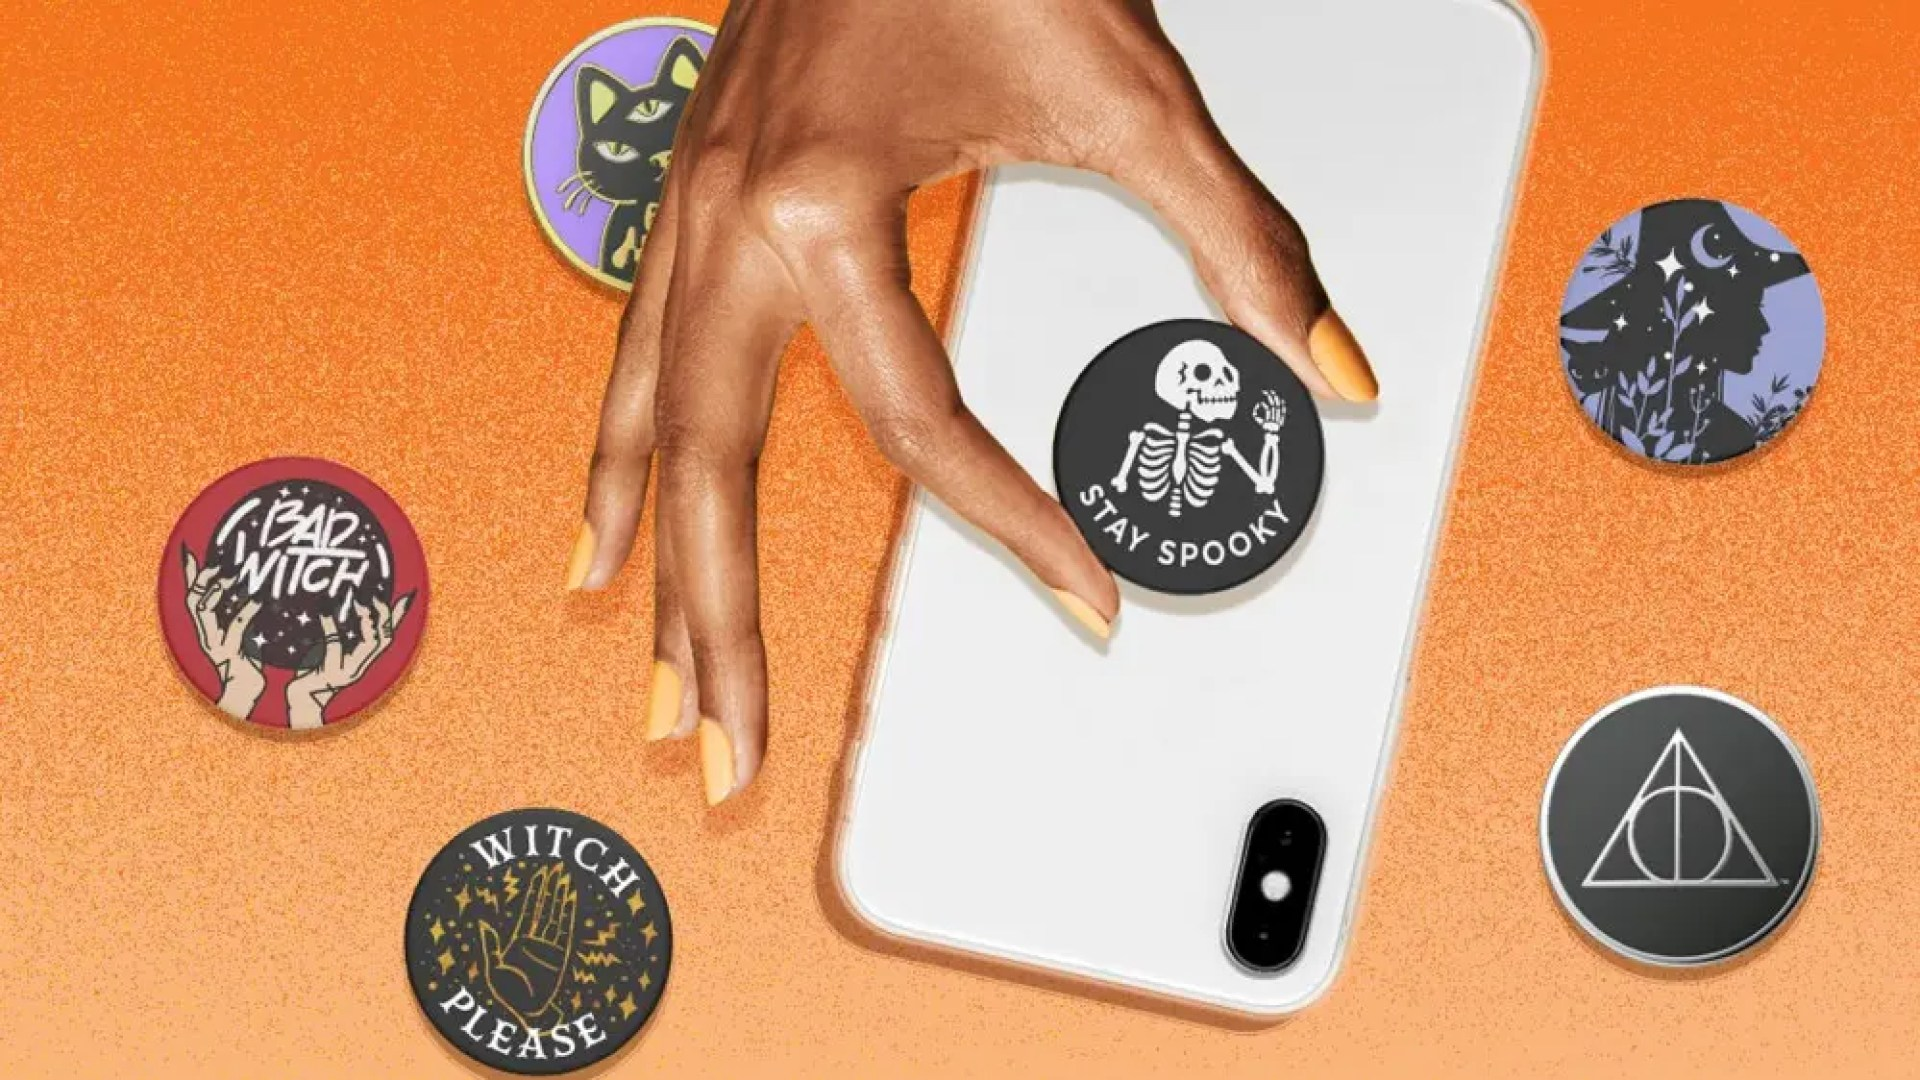 PopSockets phone accessories